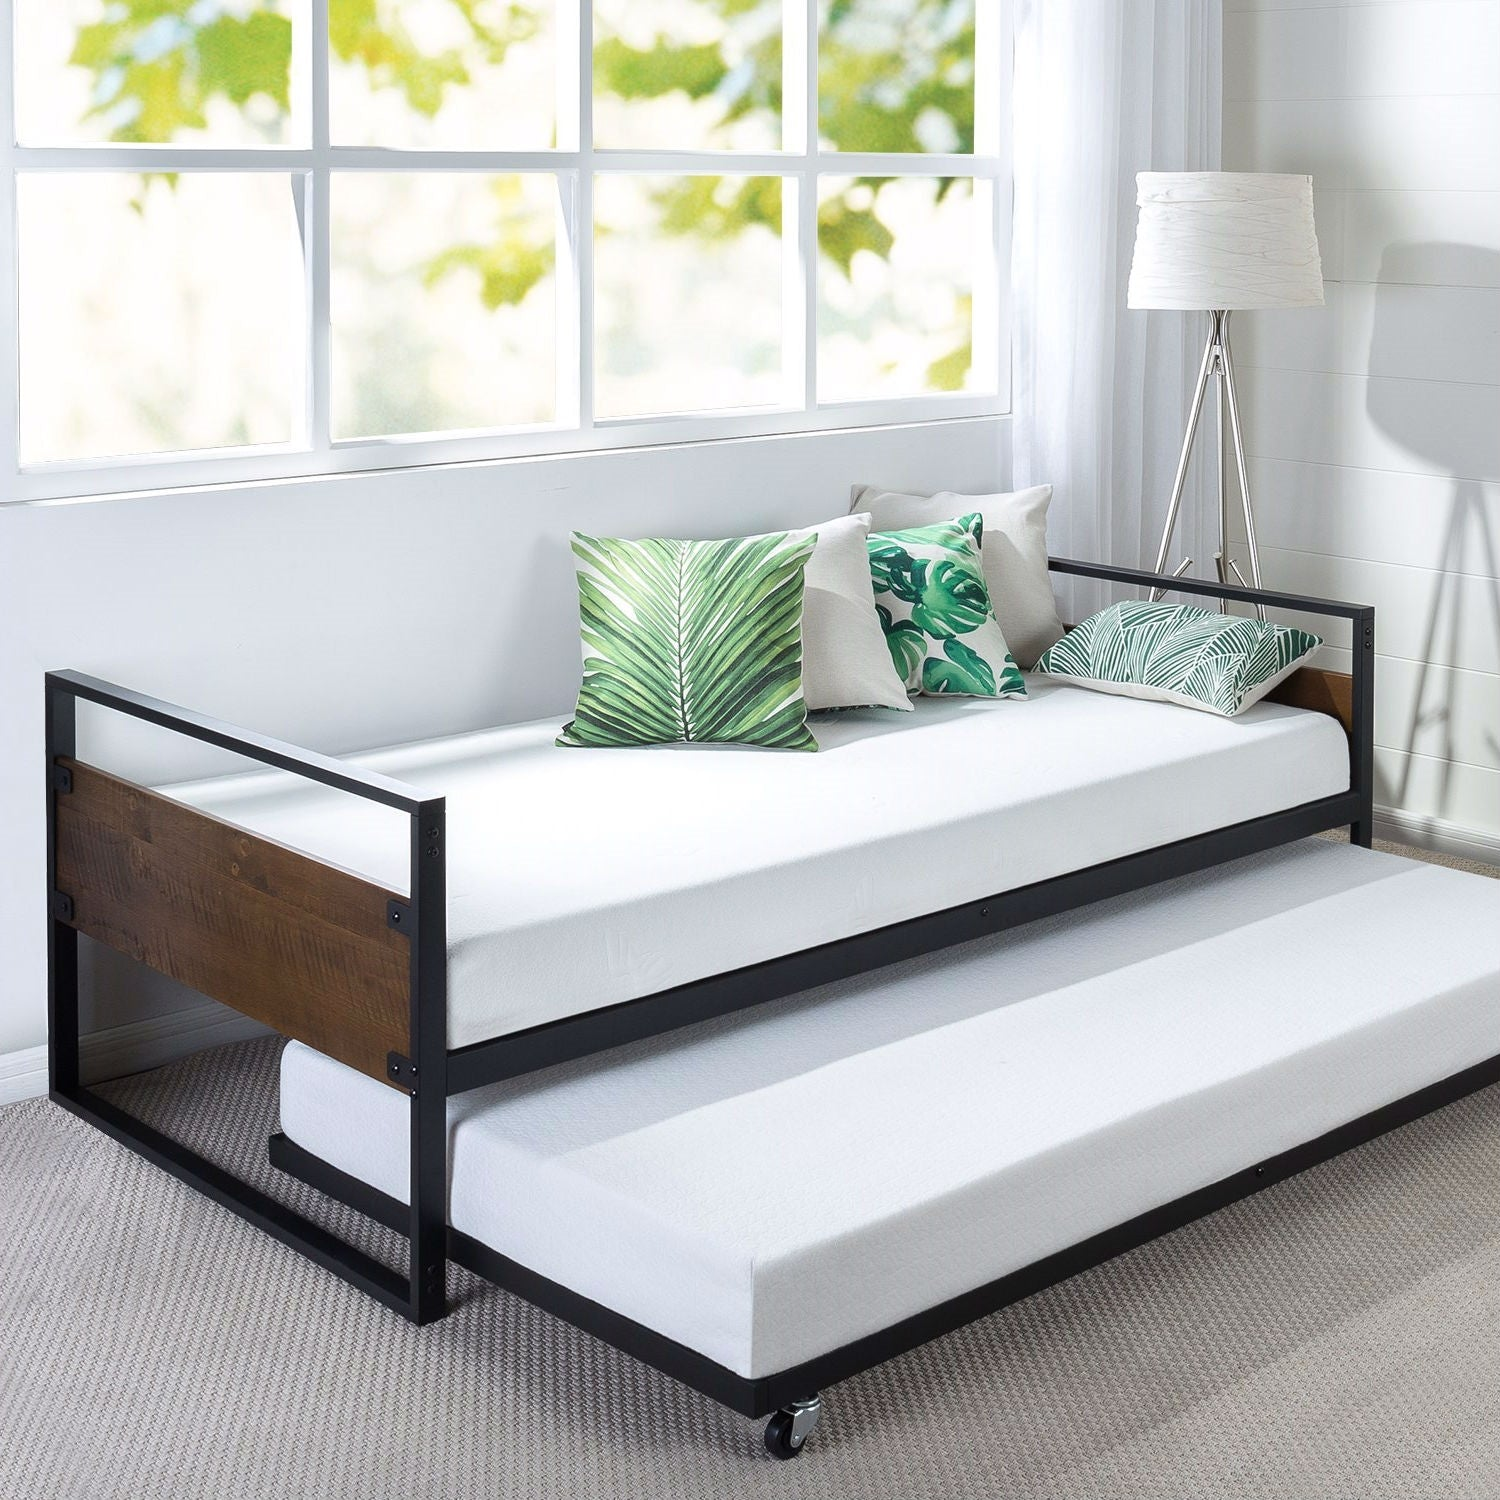 Twin size Metal Wood Daybed Frame with Roll Out Trundle Bed